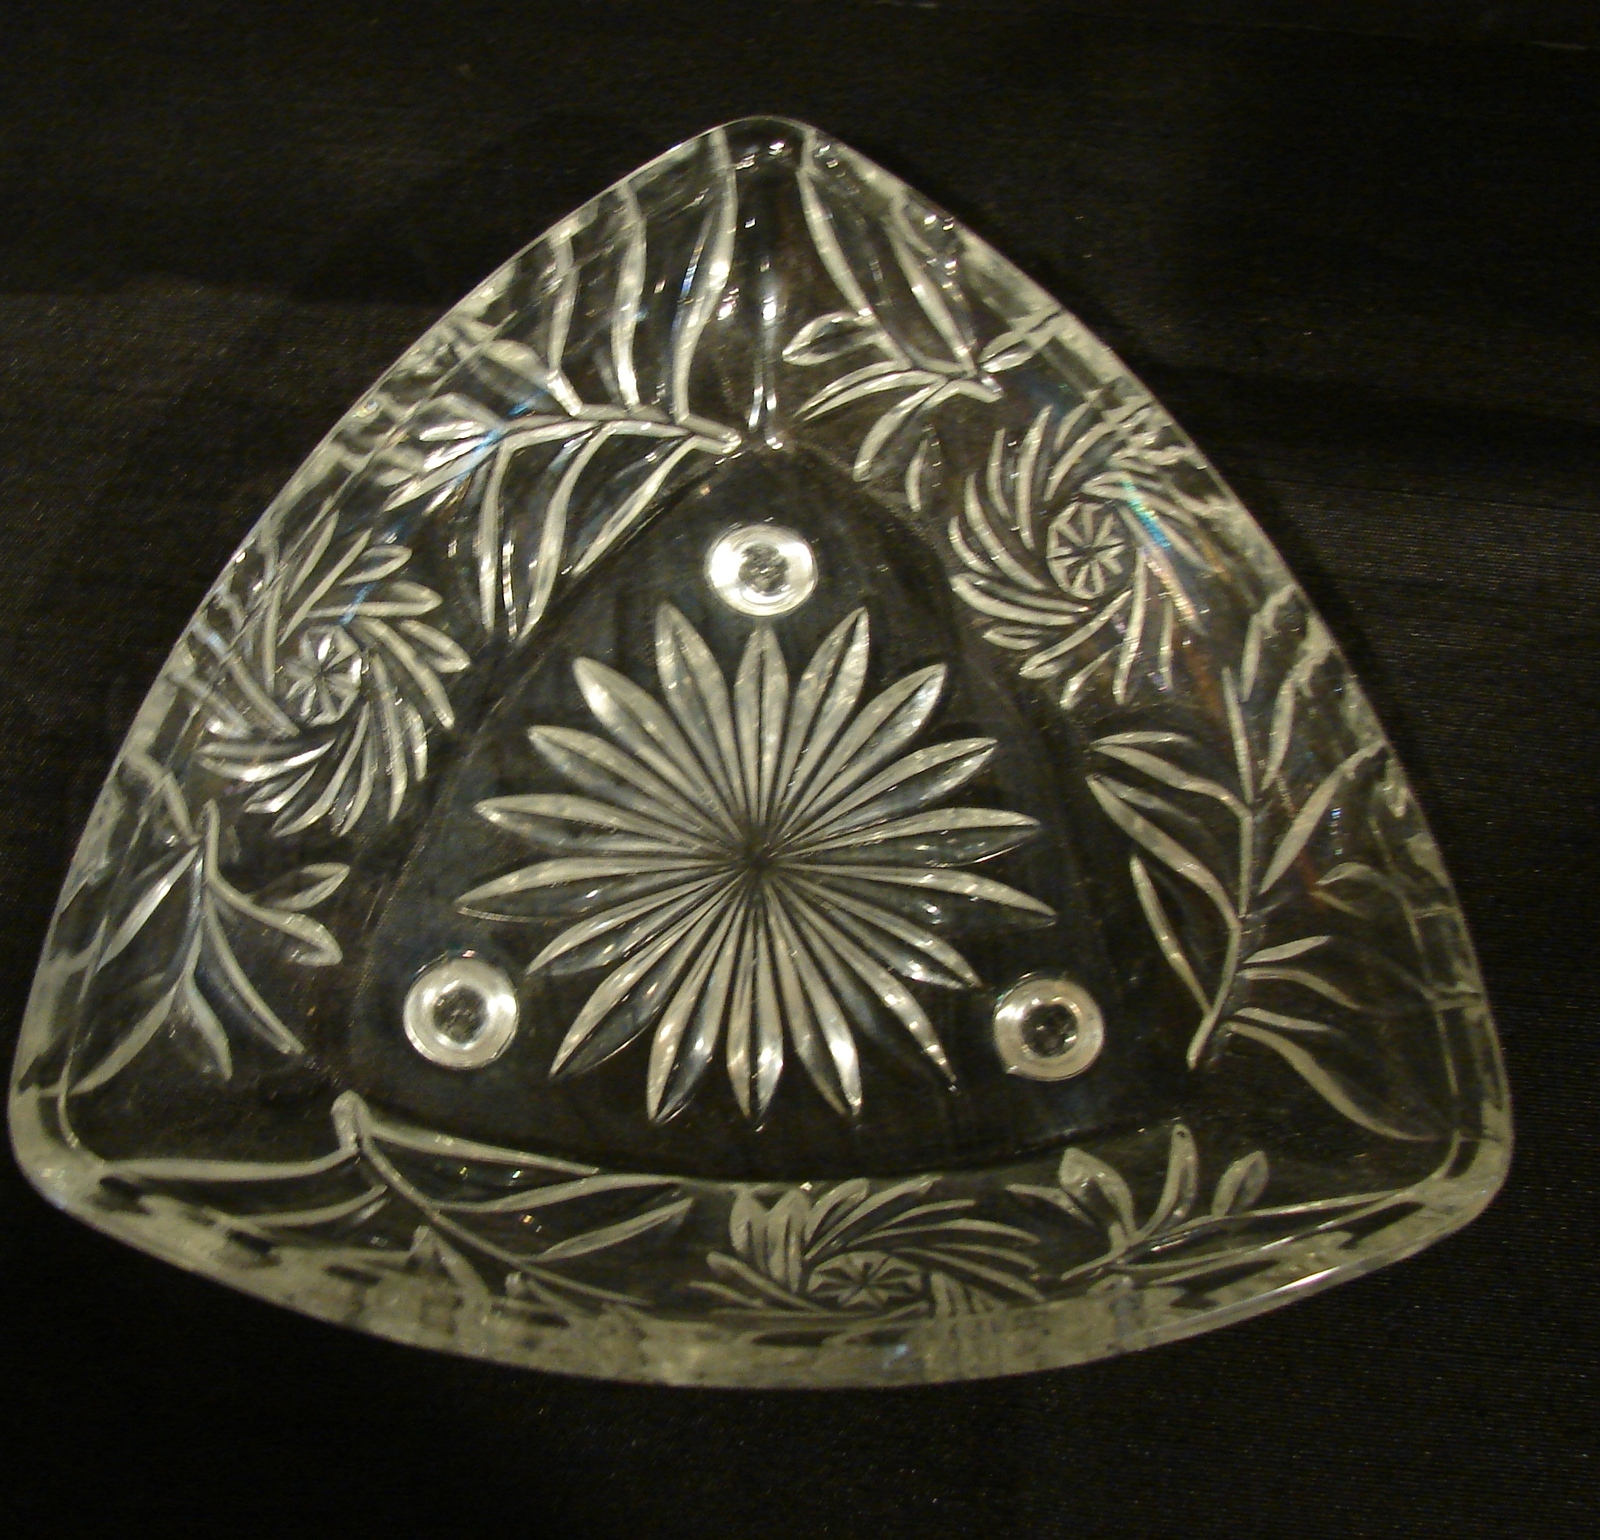 Primary image for Hazel Atlas #6045 Footed Dish, Triangle Shaped Bowl, Elegant Candy Bowl